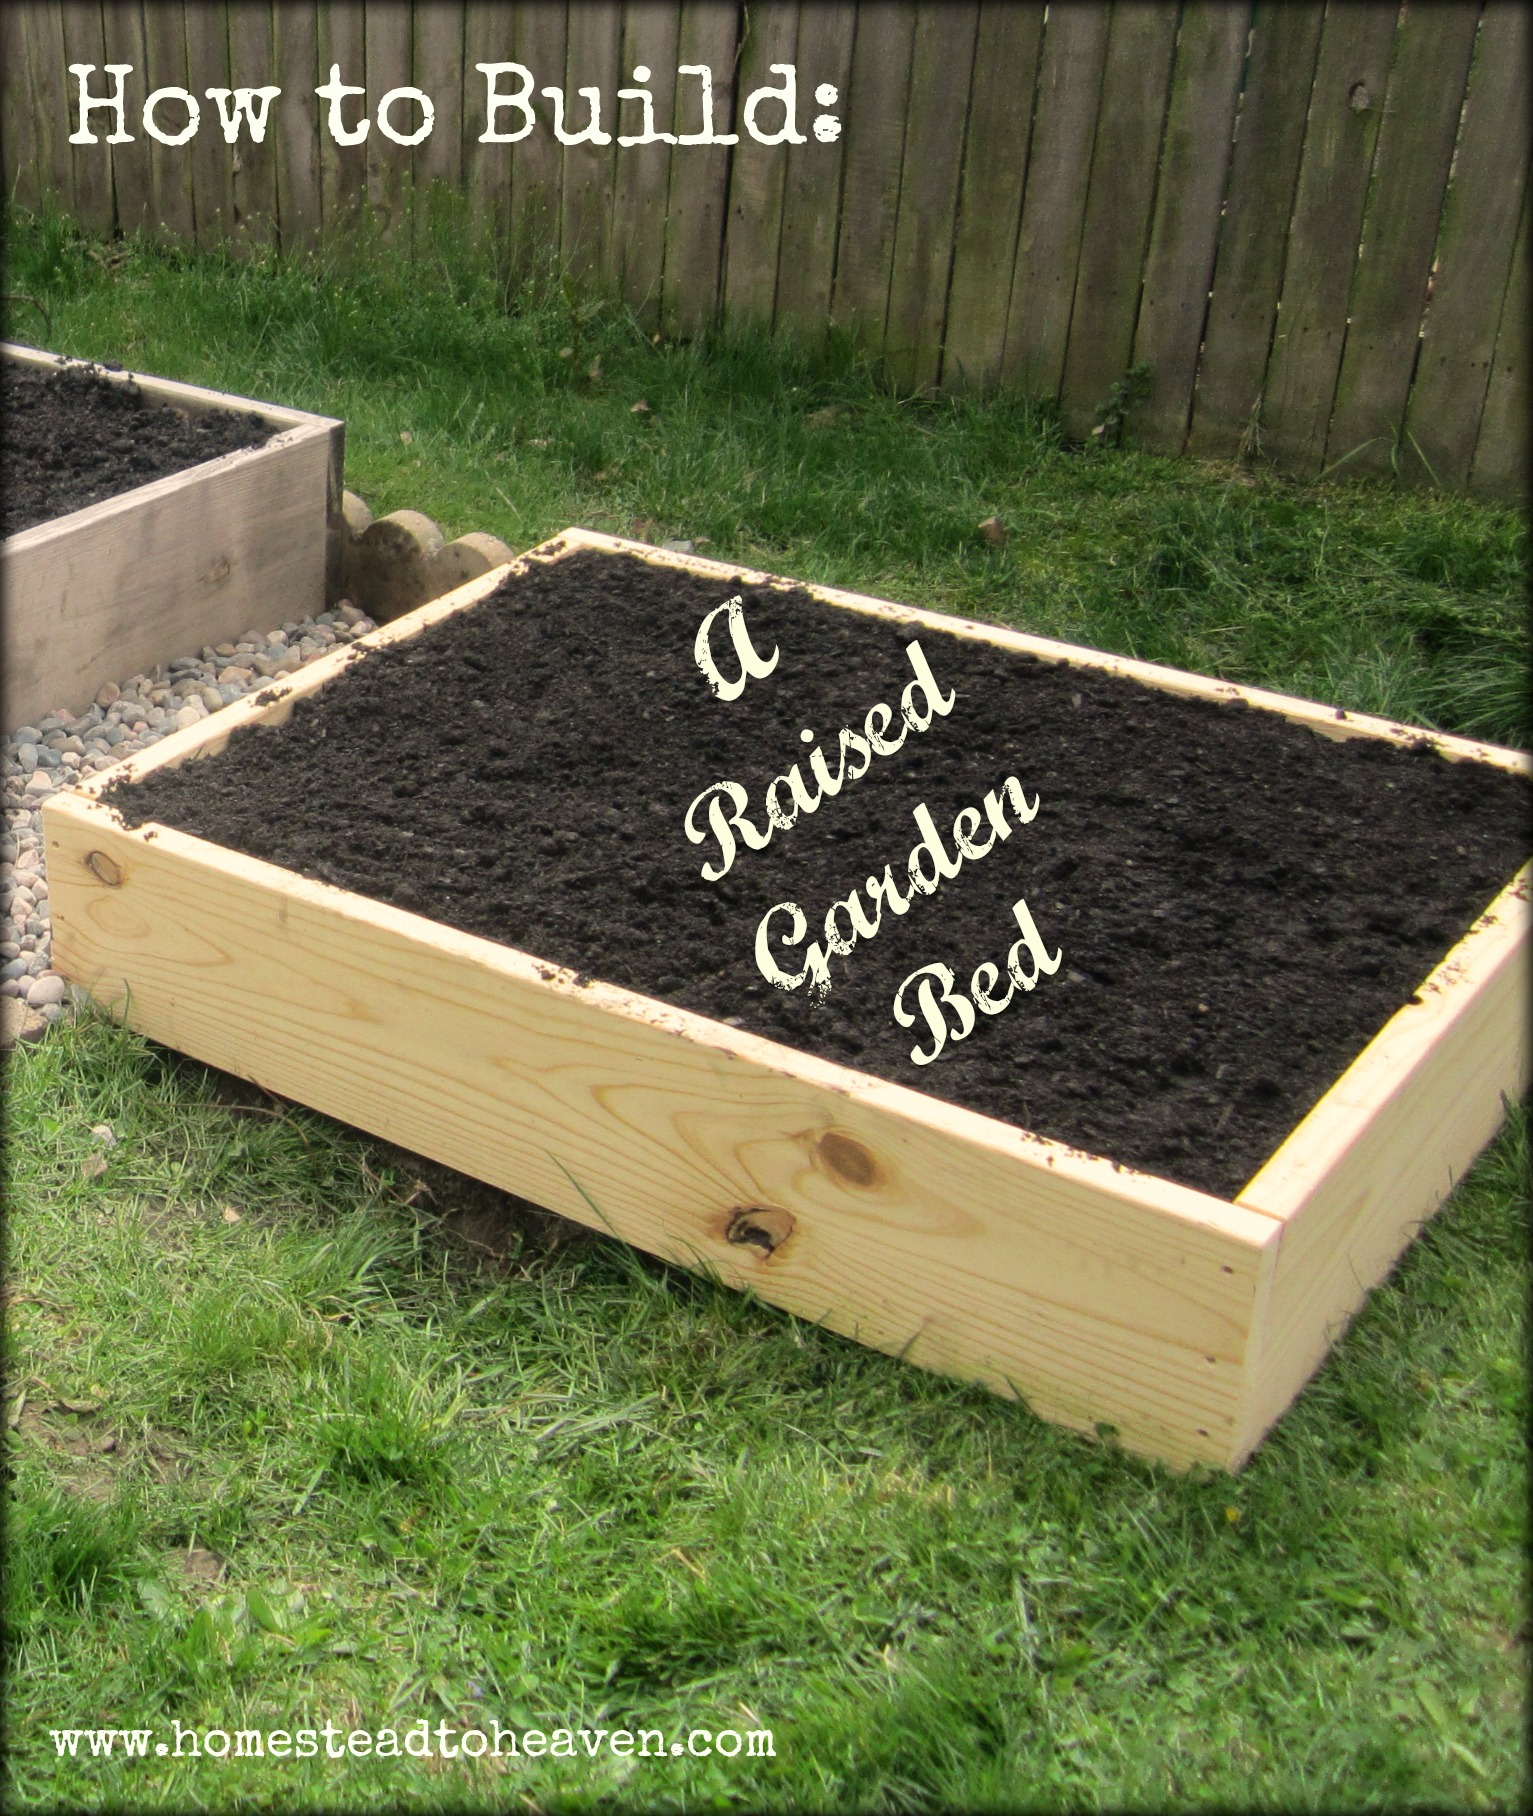 How to Build Raised Garden Beds Homestead Bloggers Network